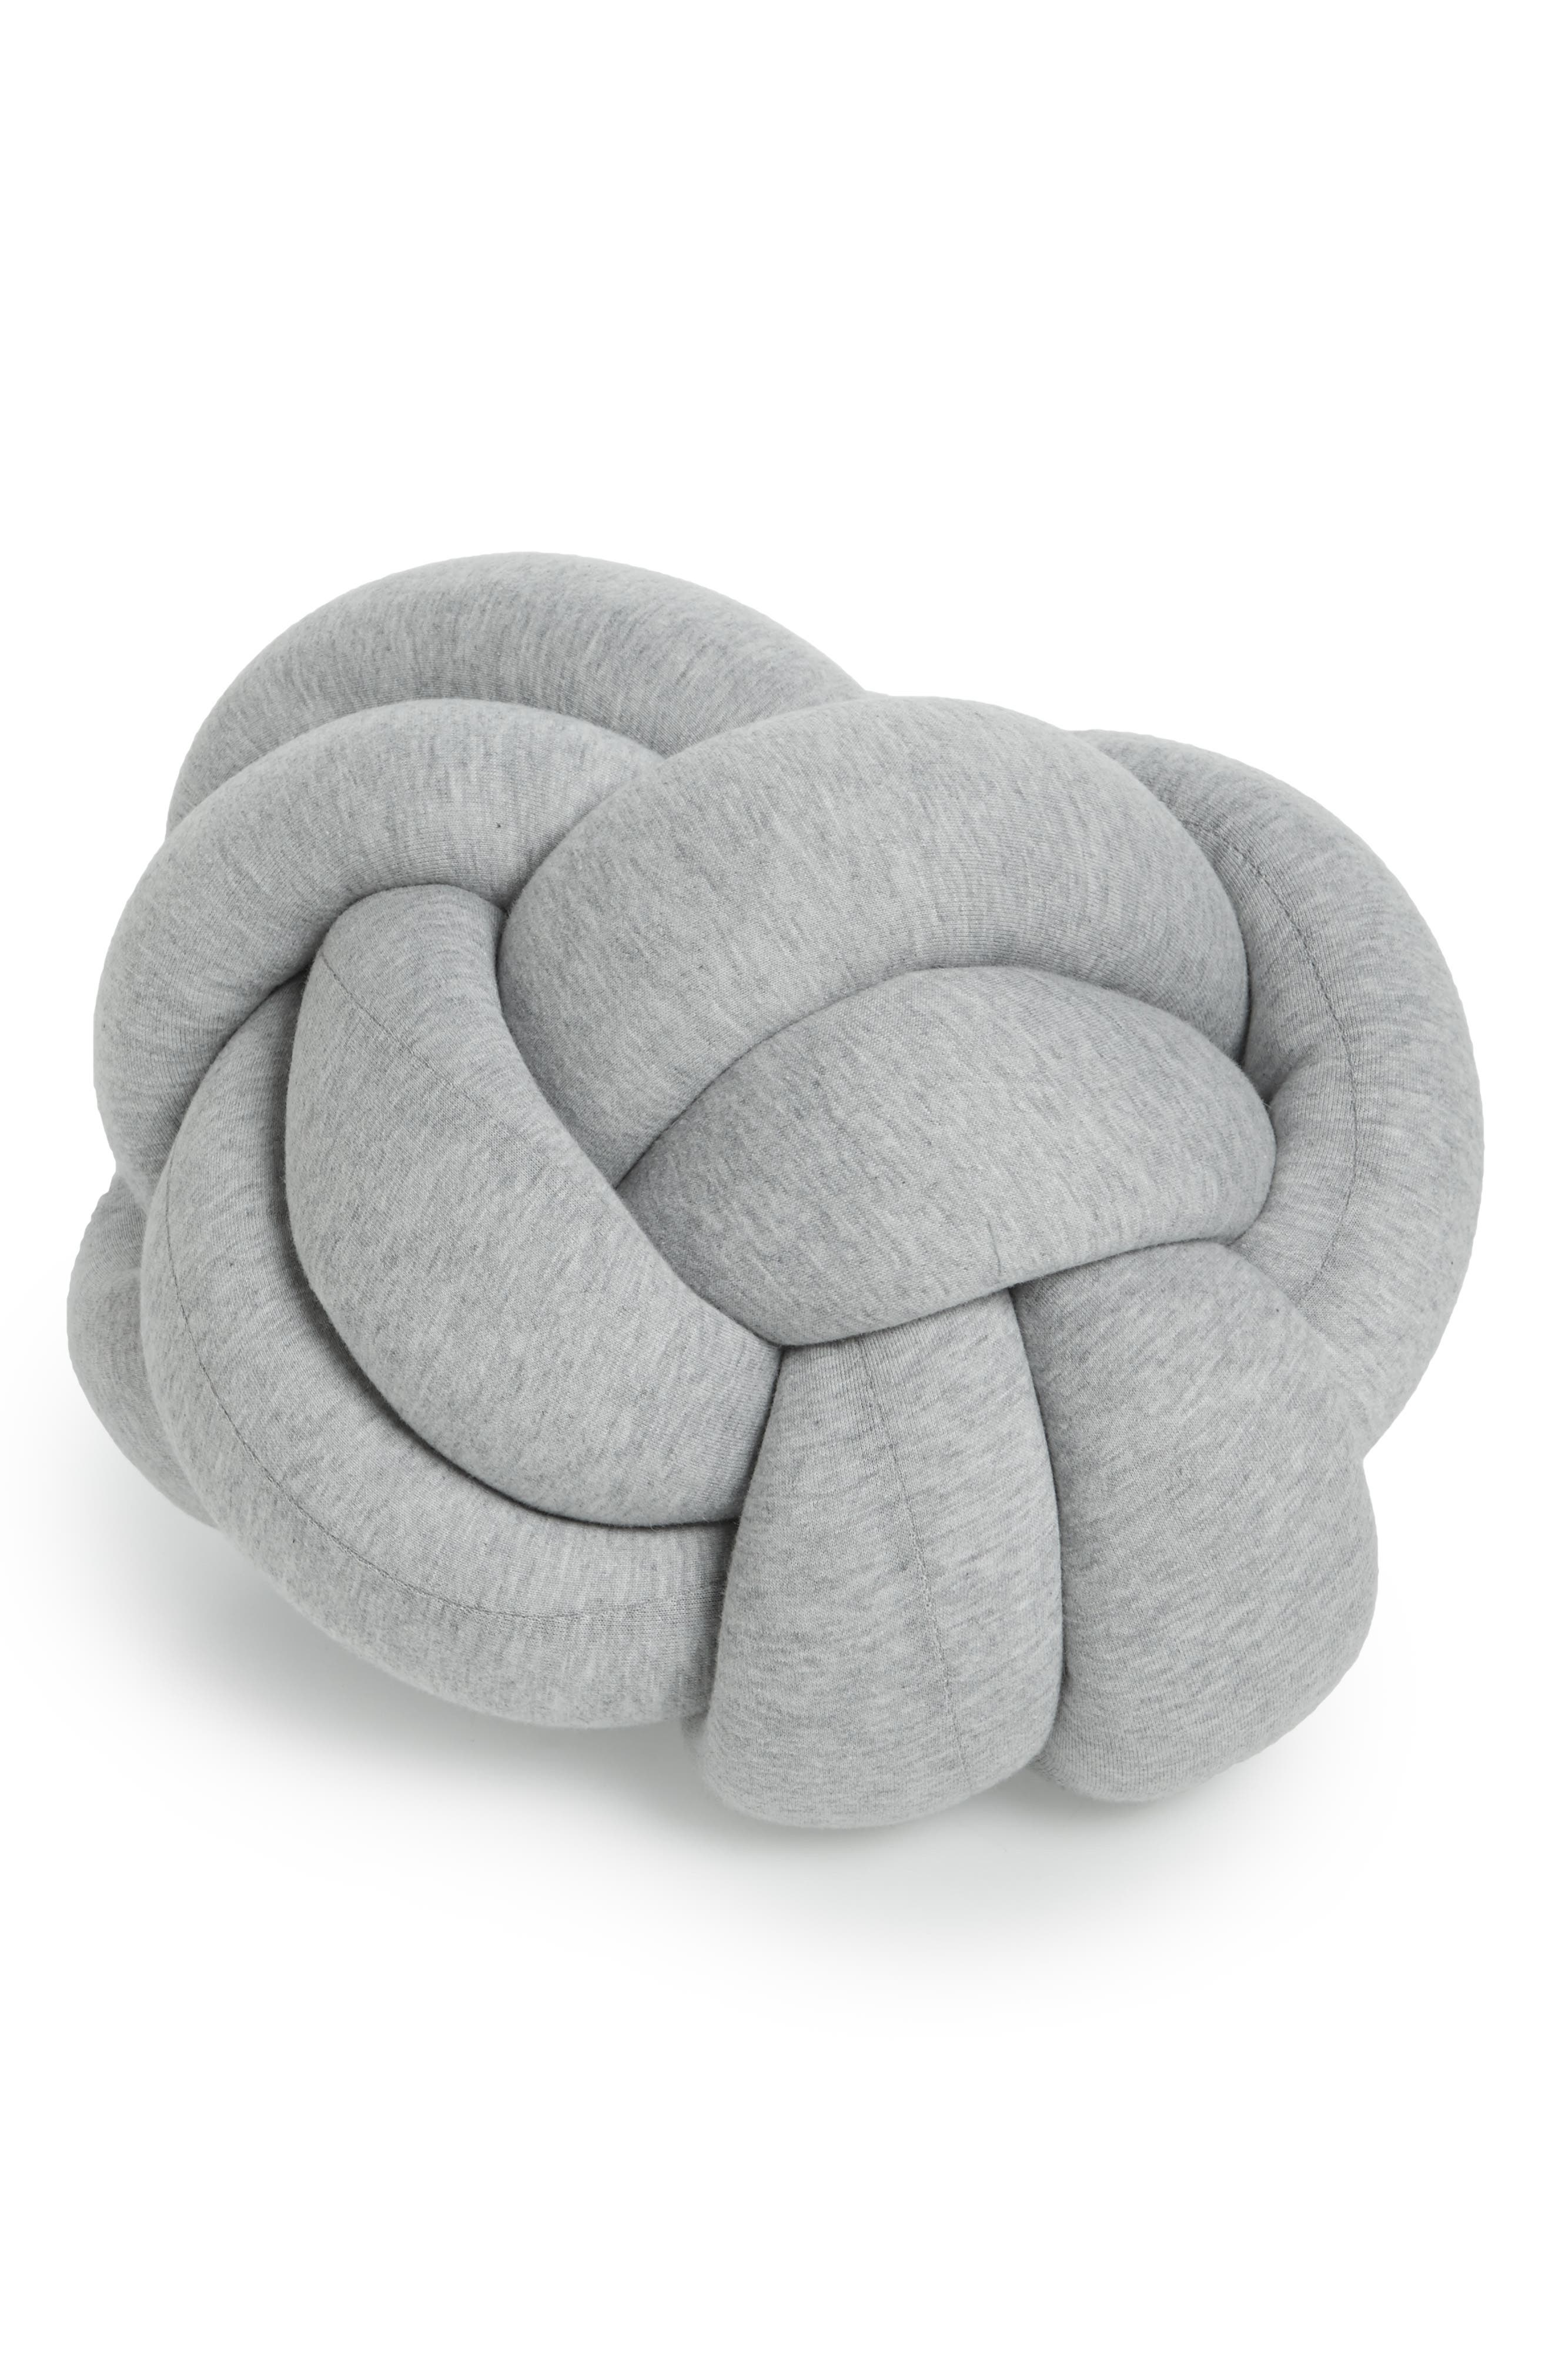 Jersey Knot Pillow,                         Main,                         color, 020